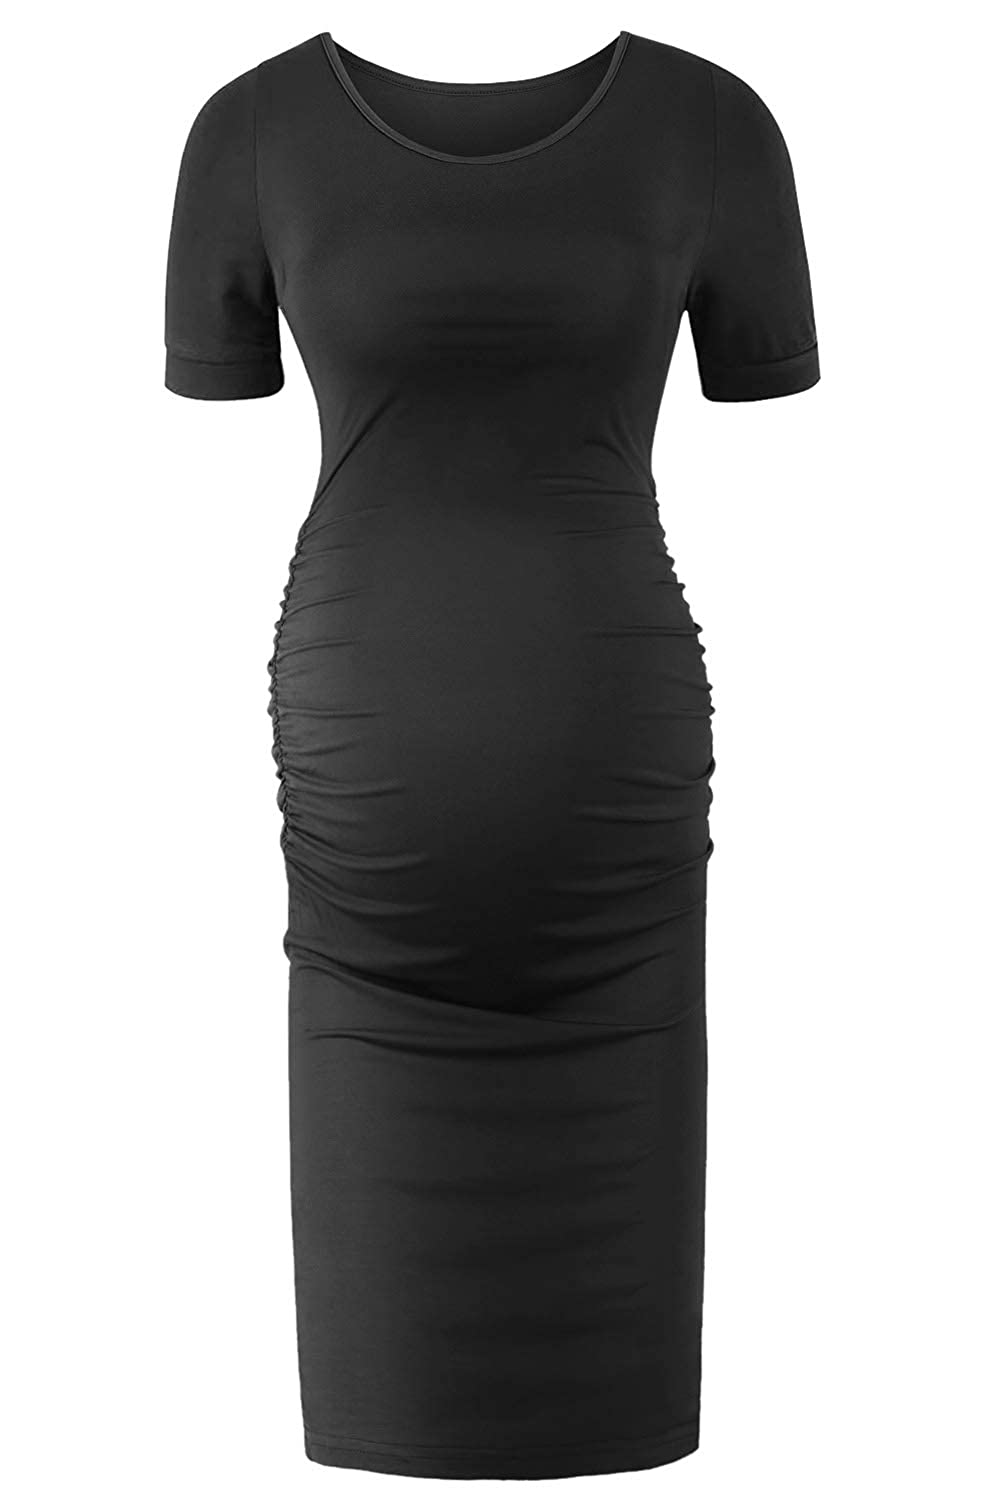 f33a58ec86e15 SUNNYBUY Women's Short Sleeve Maternity Dresses Casual Summer Pregnancy  Work Clothes Ruched Fitted Maternity Bodycon Dress